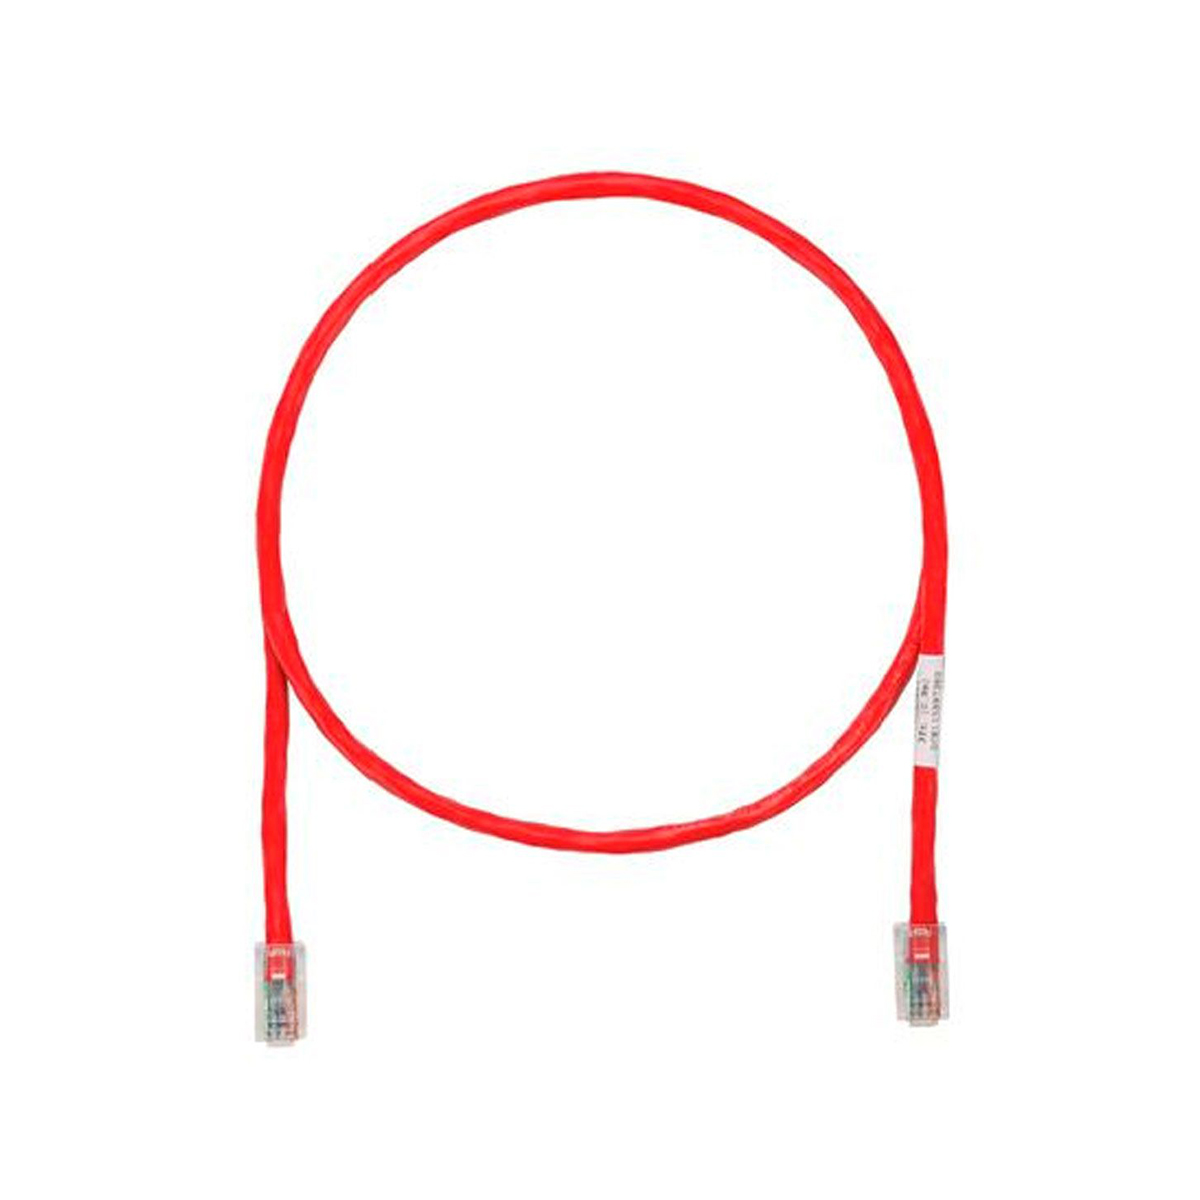 Patch cord 091 m Panduit UTPSP3RDY